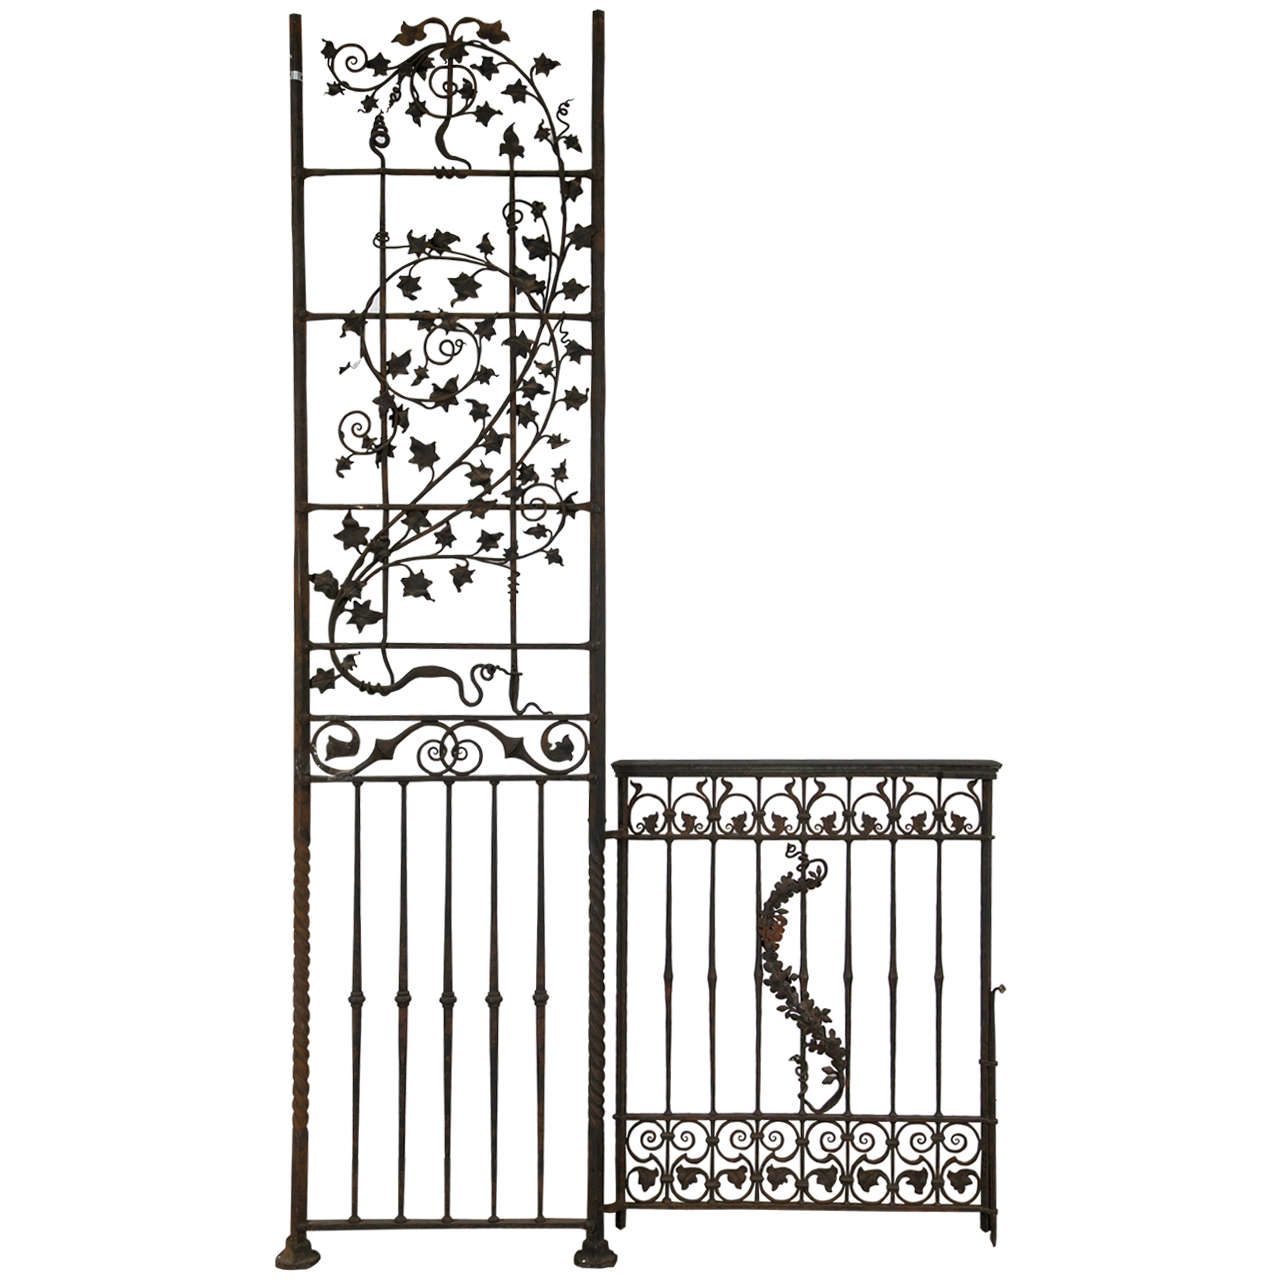 Antique Wrought iron Gates and Panels-Acorn Pattern | 1stdibs.com - Antique Wrought Iron Gates And Panels-Acorn Pattern Gate Drawings